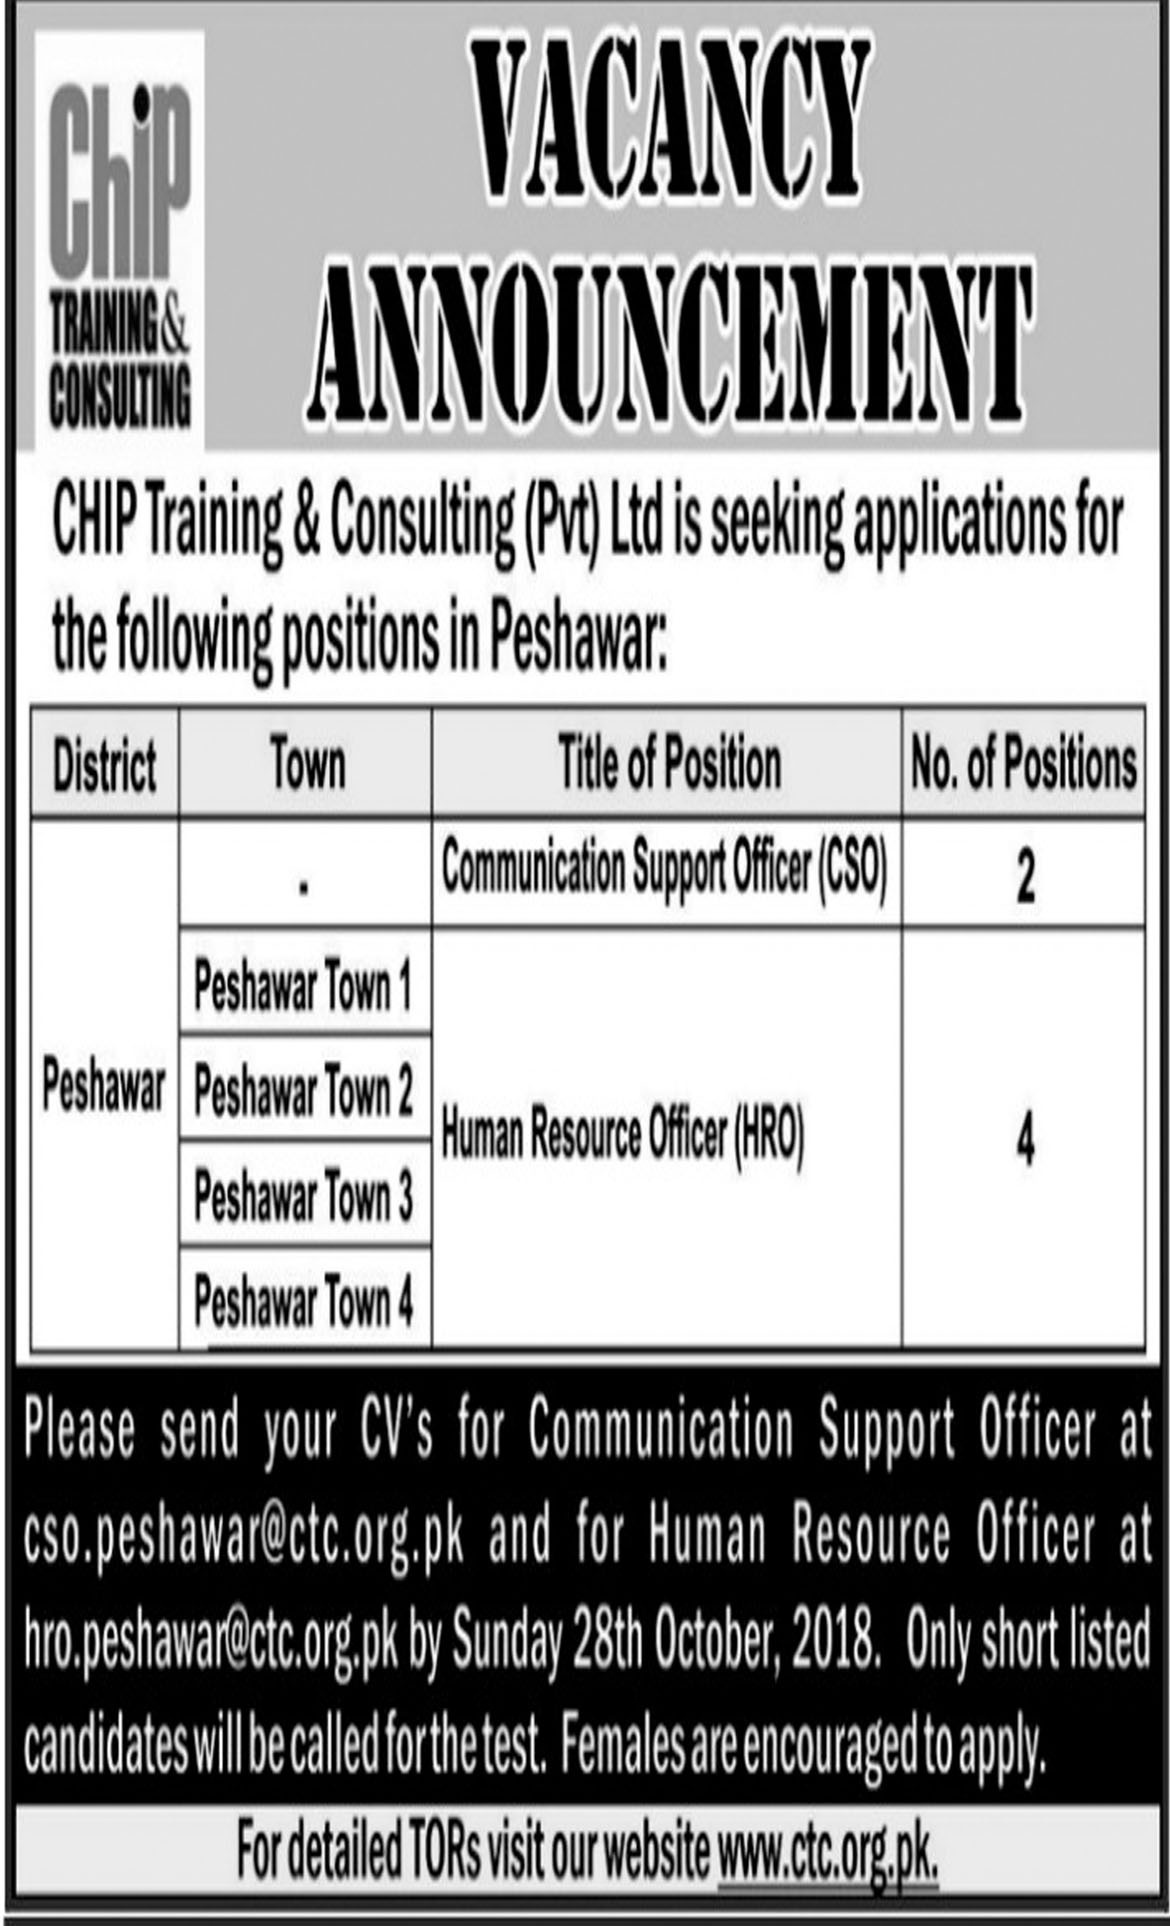 Jobs In Chip Training & Consulting 23 Oct 2018